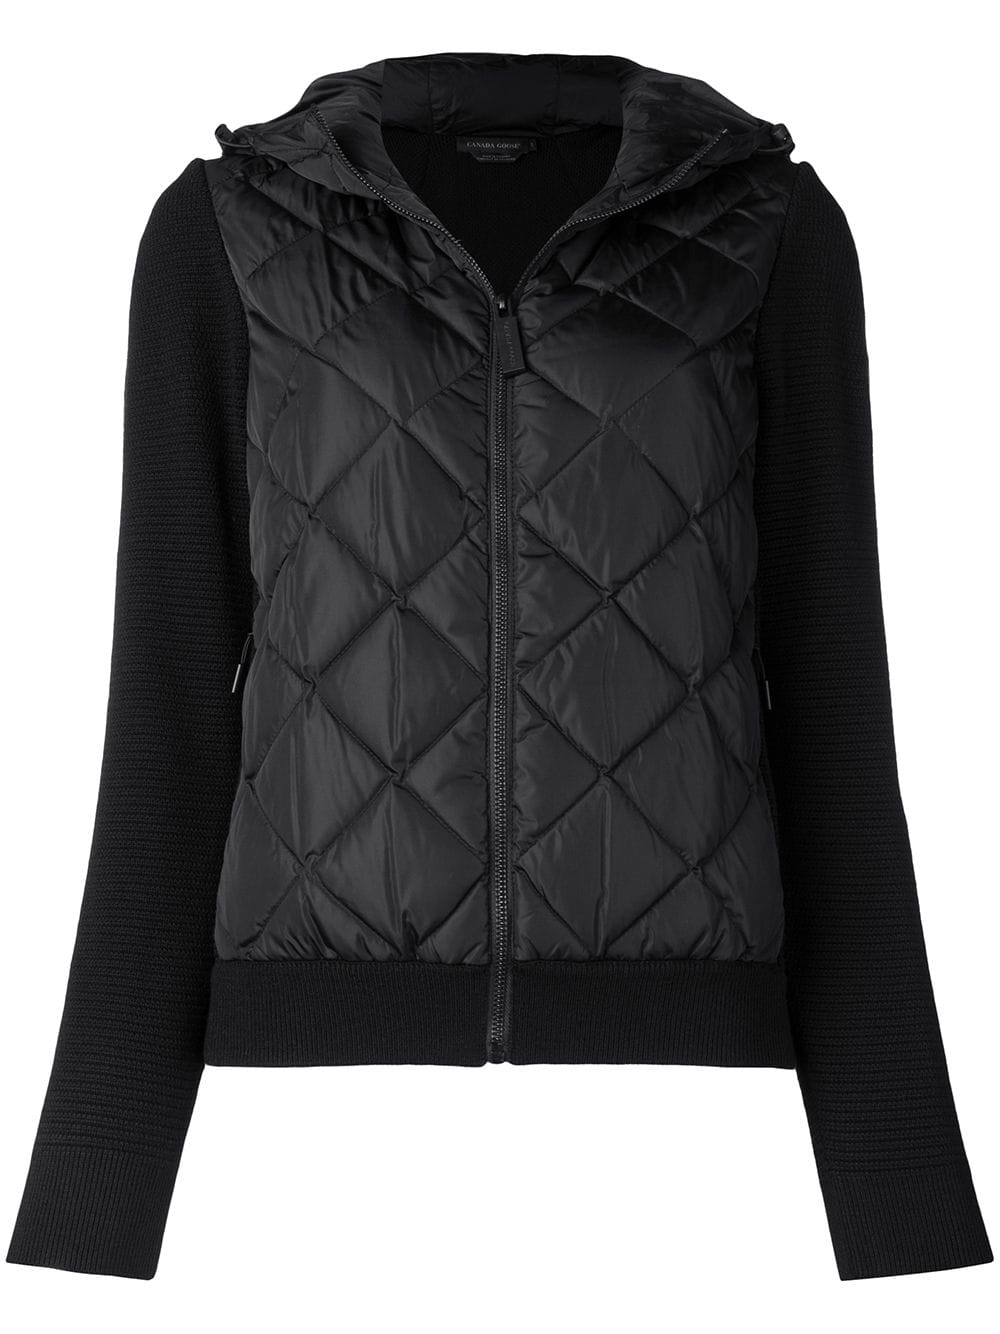 canada-goose-quilted-bomber-jacket-black-farfetch-com-photo.jpg 1539060175 2ace875a8c1